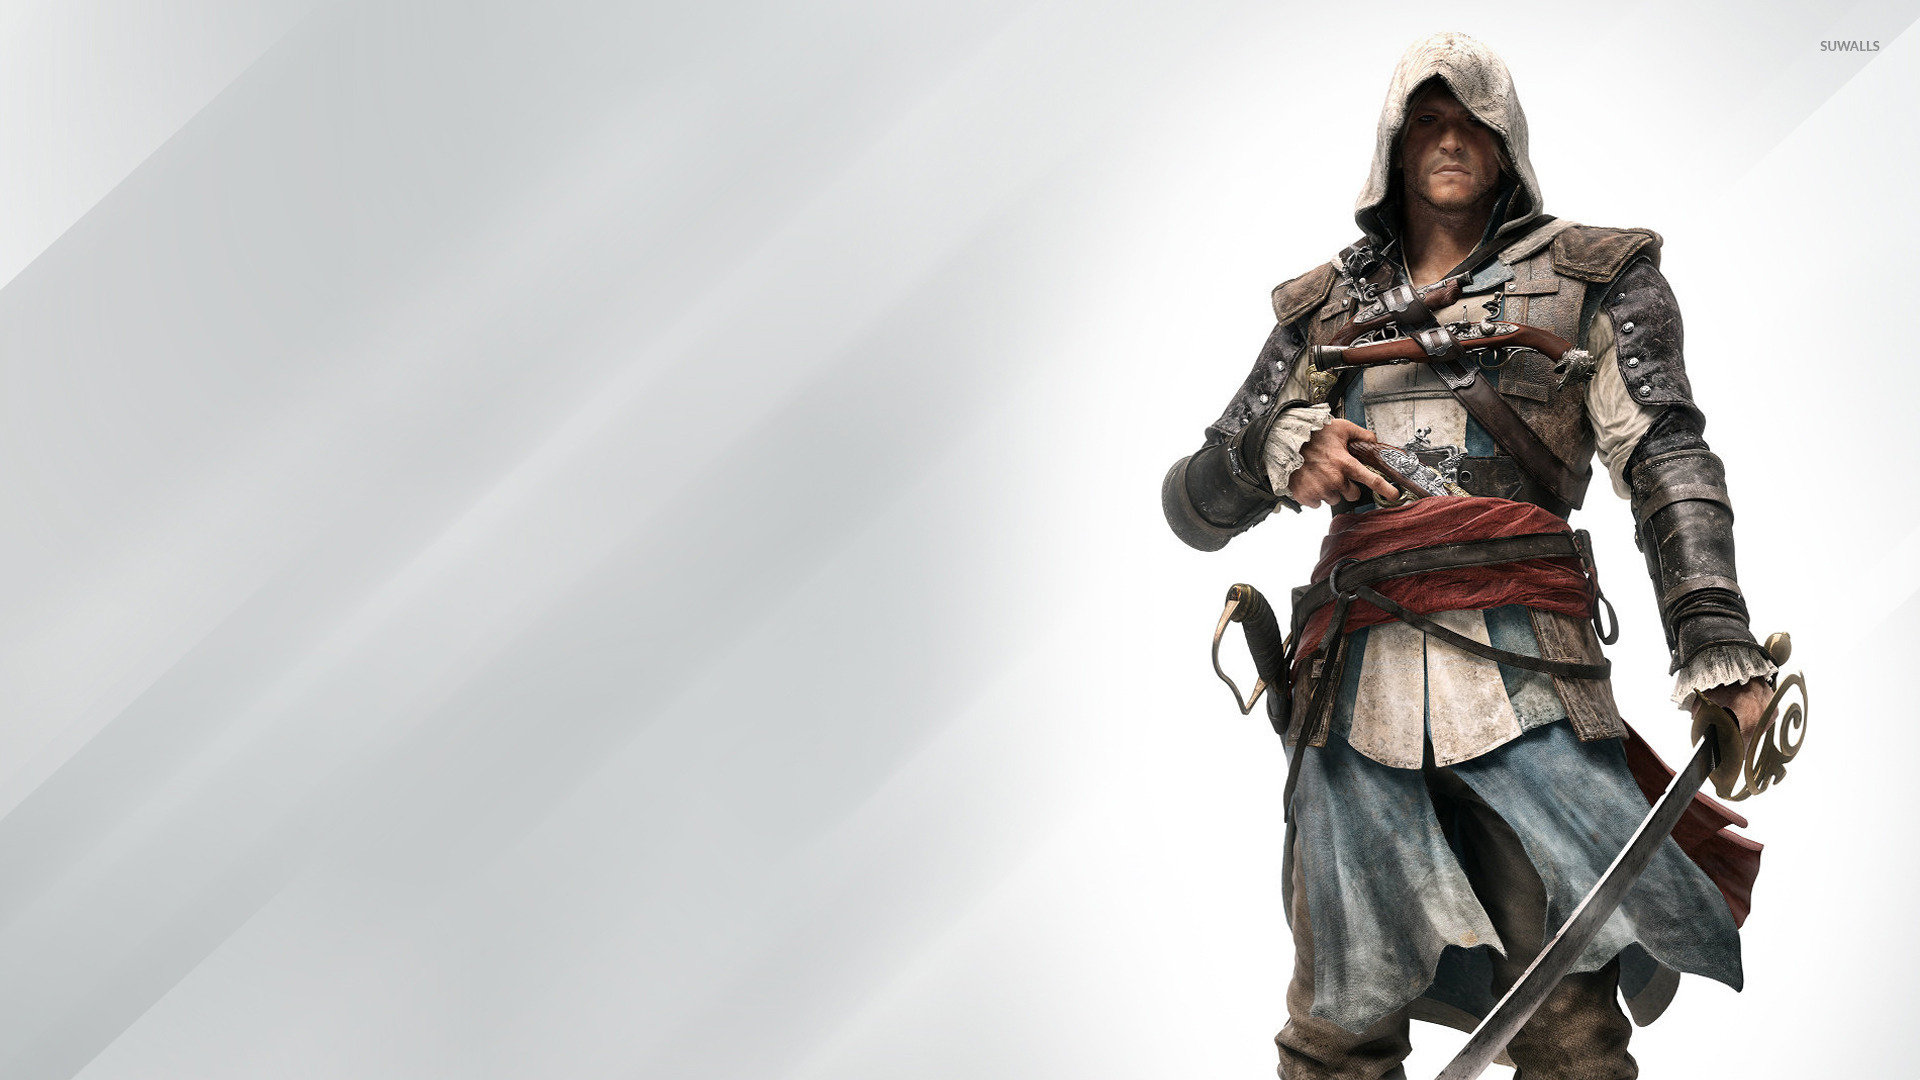 Edward Kenway Assassin S Creed Iv Black Flag 8 Wallpaper